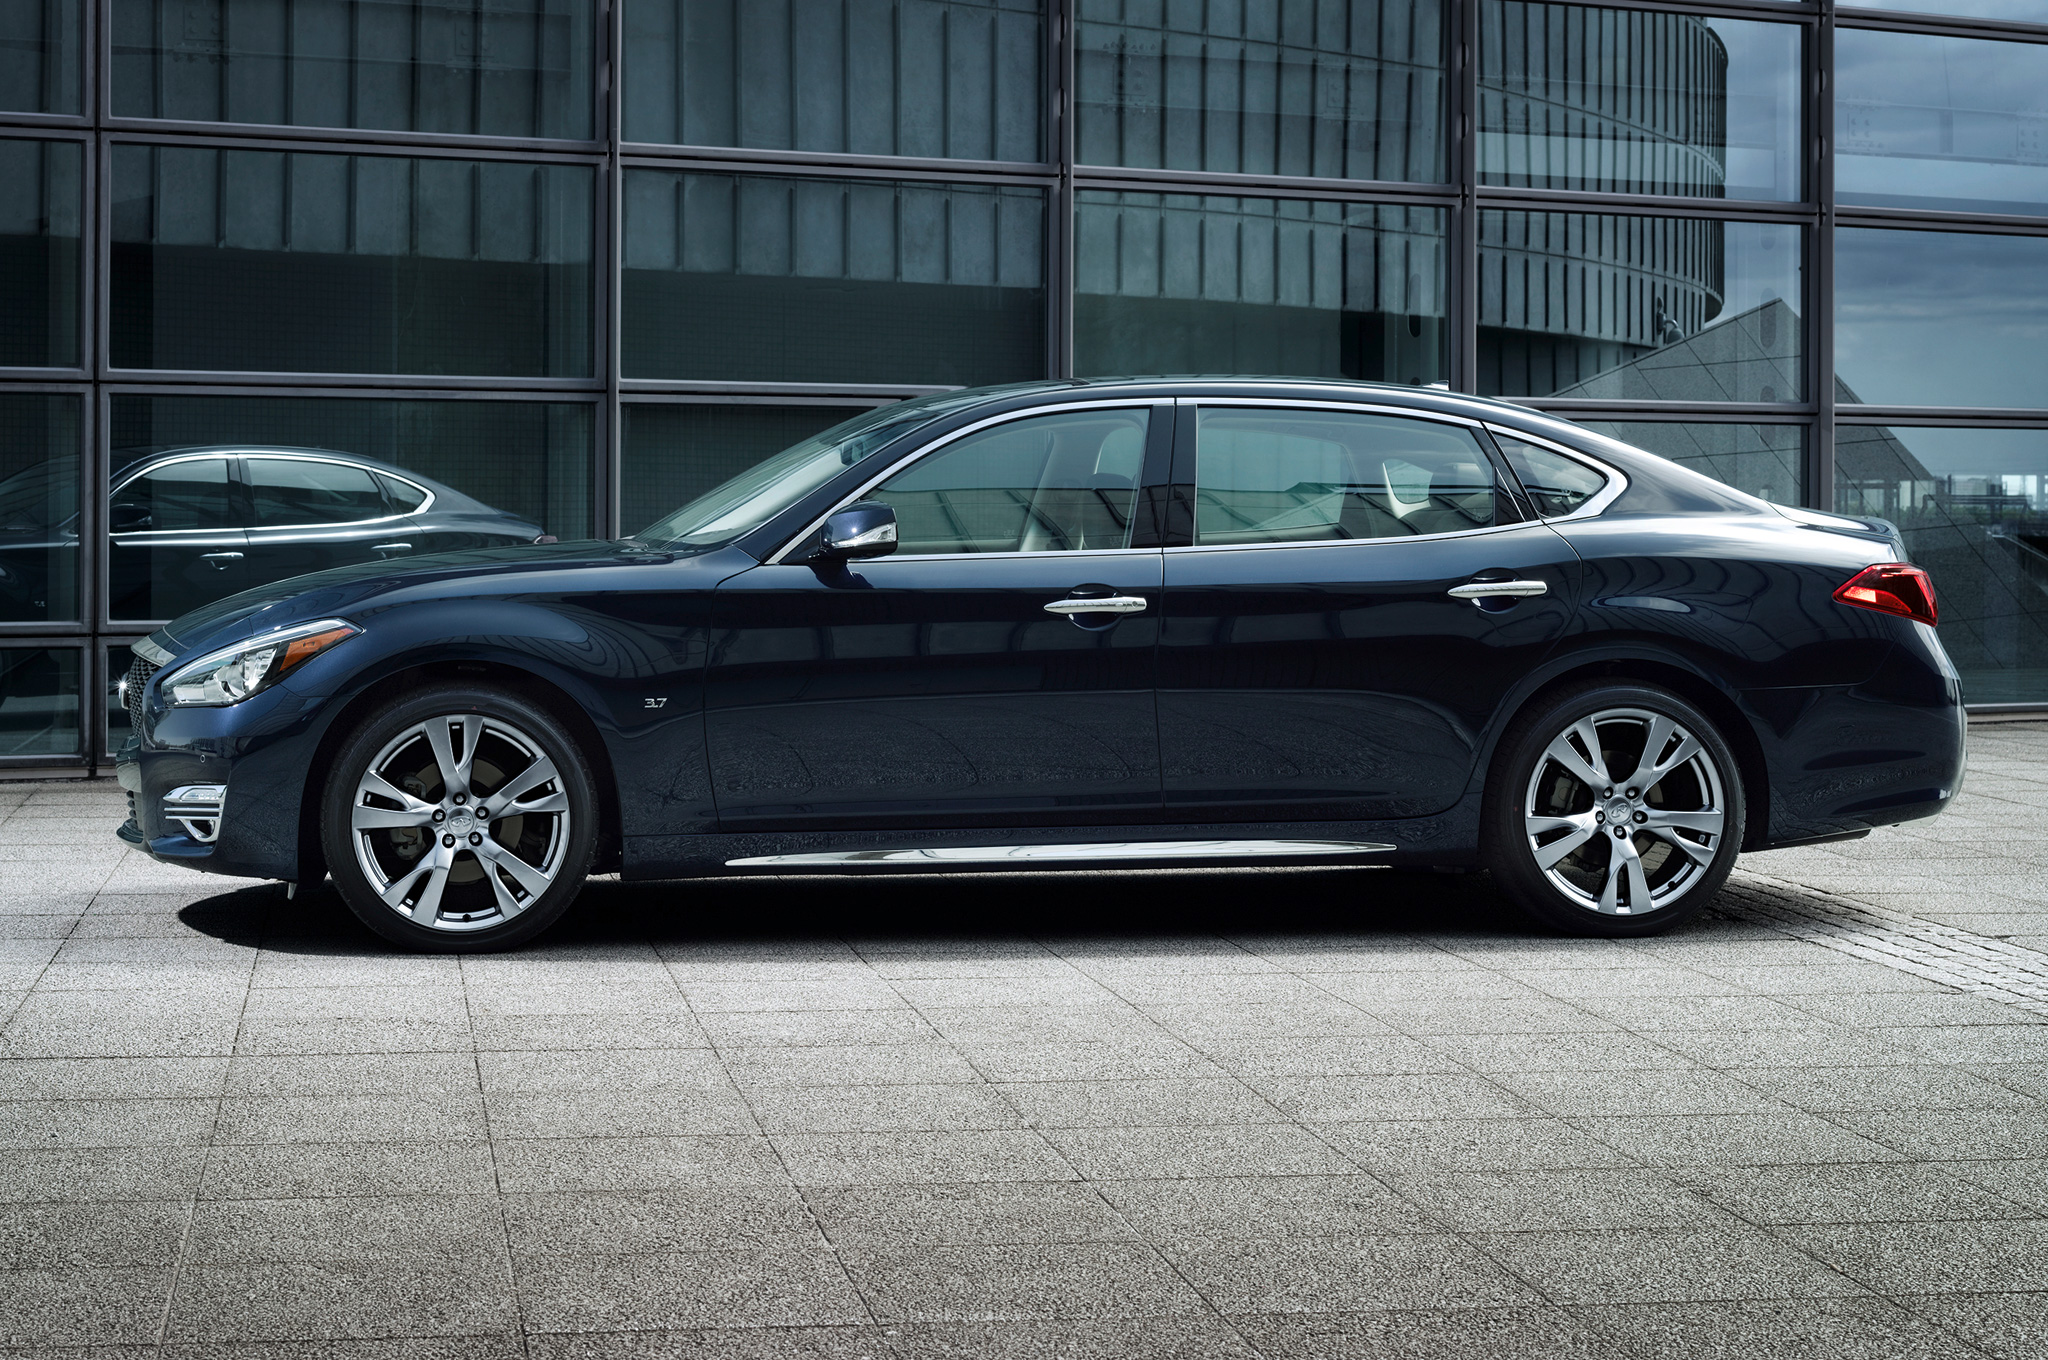 2015 Infiniti Q70L Side Profile